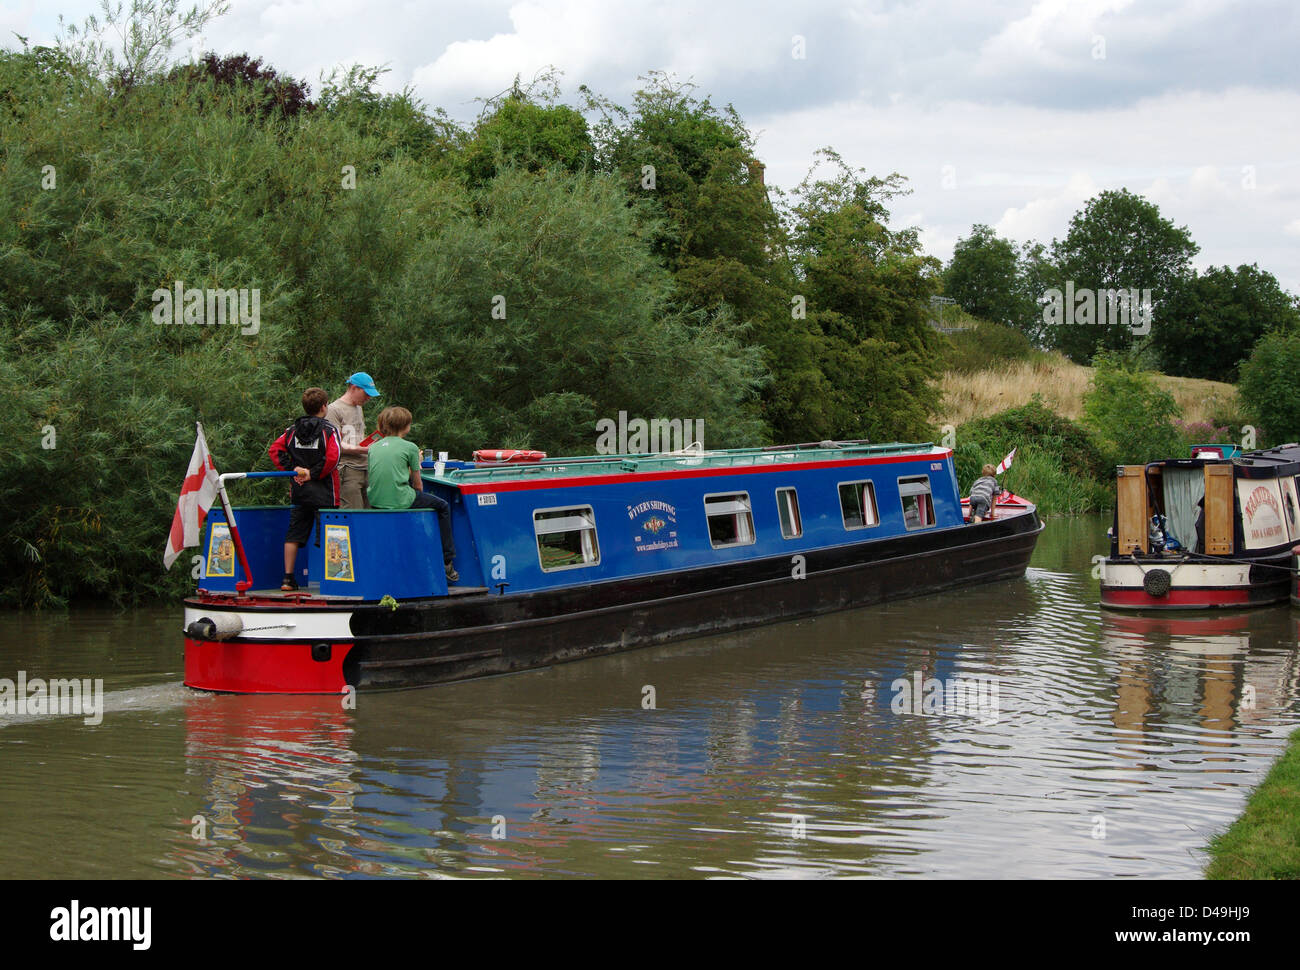 Two narrowboats passing, Grand Union Canal, Blisworth - Stock Image